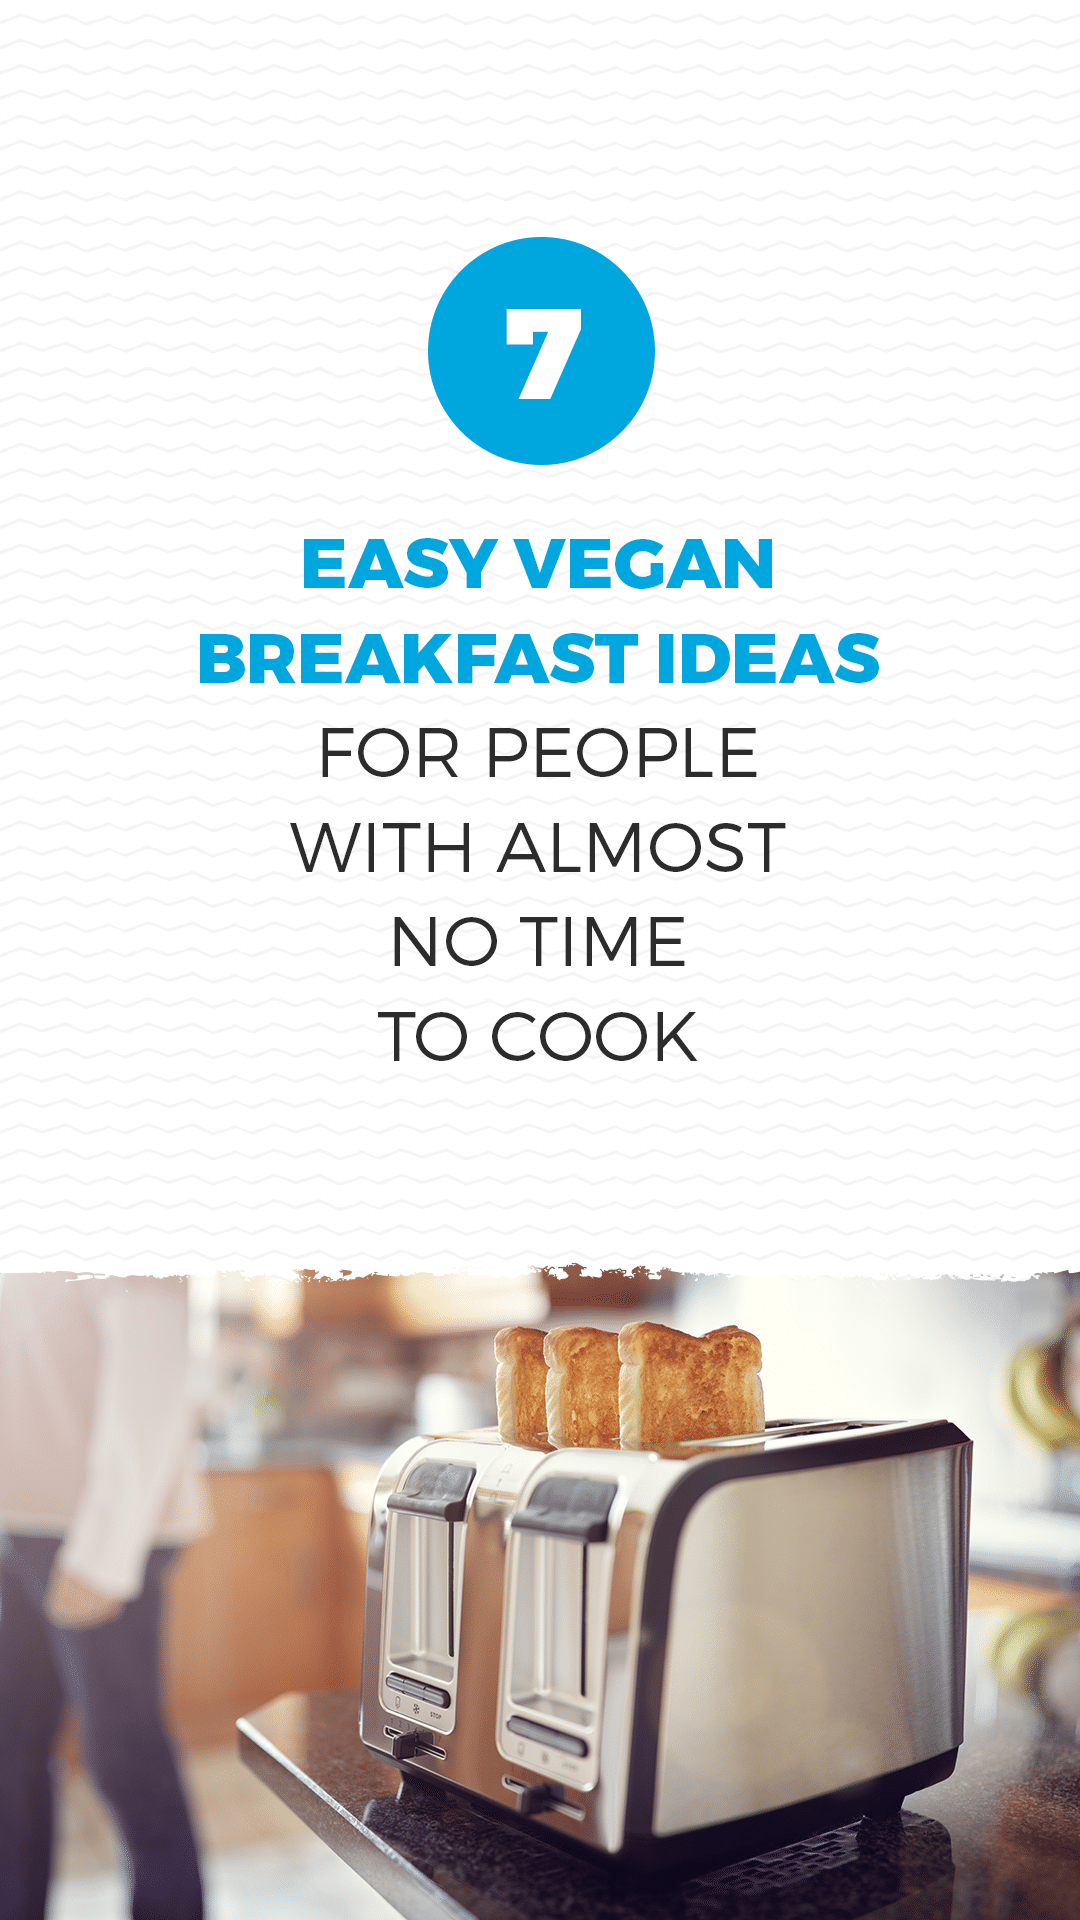 7 Easy Vegan Breakfast Ideas for People With Almost No Time to Cook